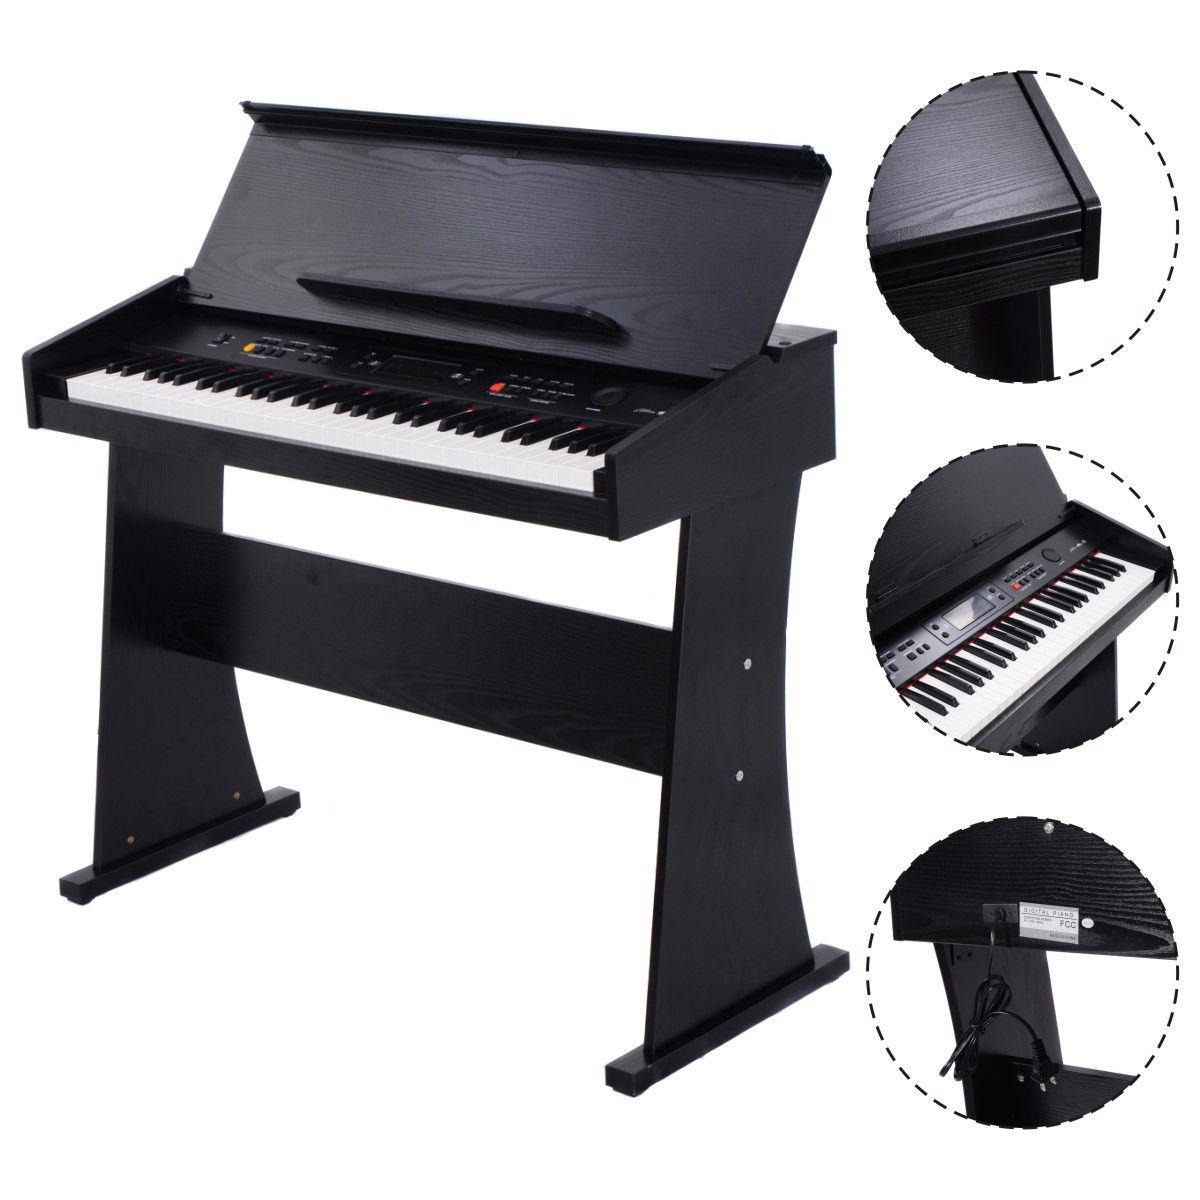 Click here to buy Costway 61 Key Electronic Piano Keyboard Music Multifunctional Digital LED Display by Costway.